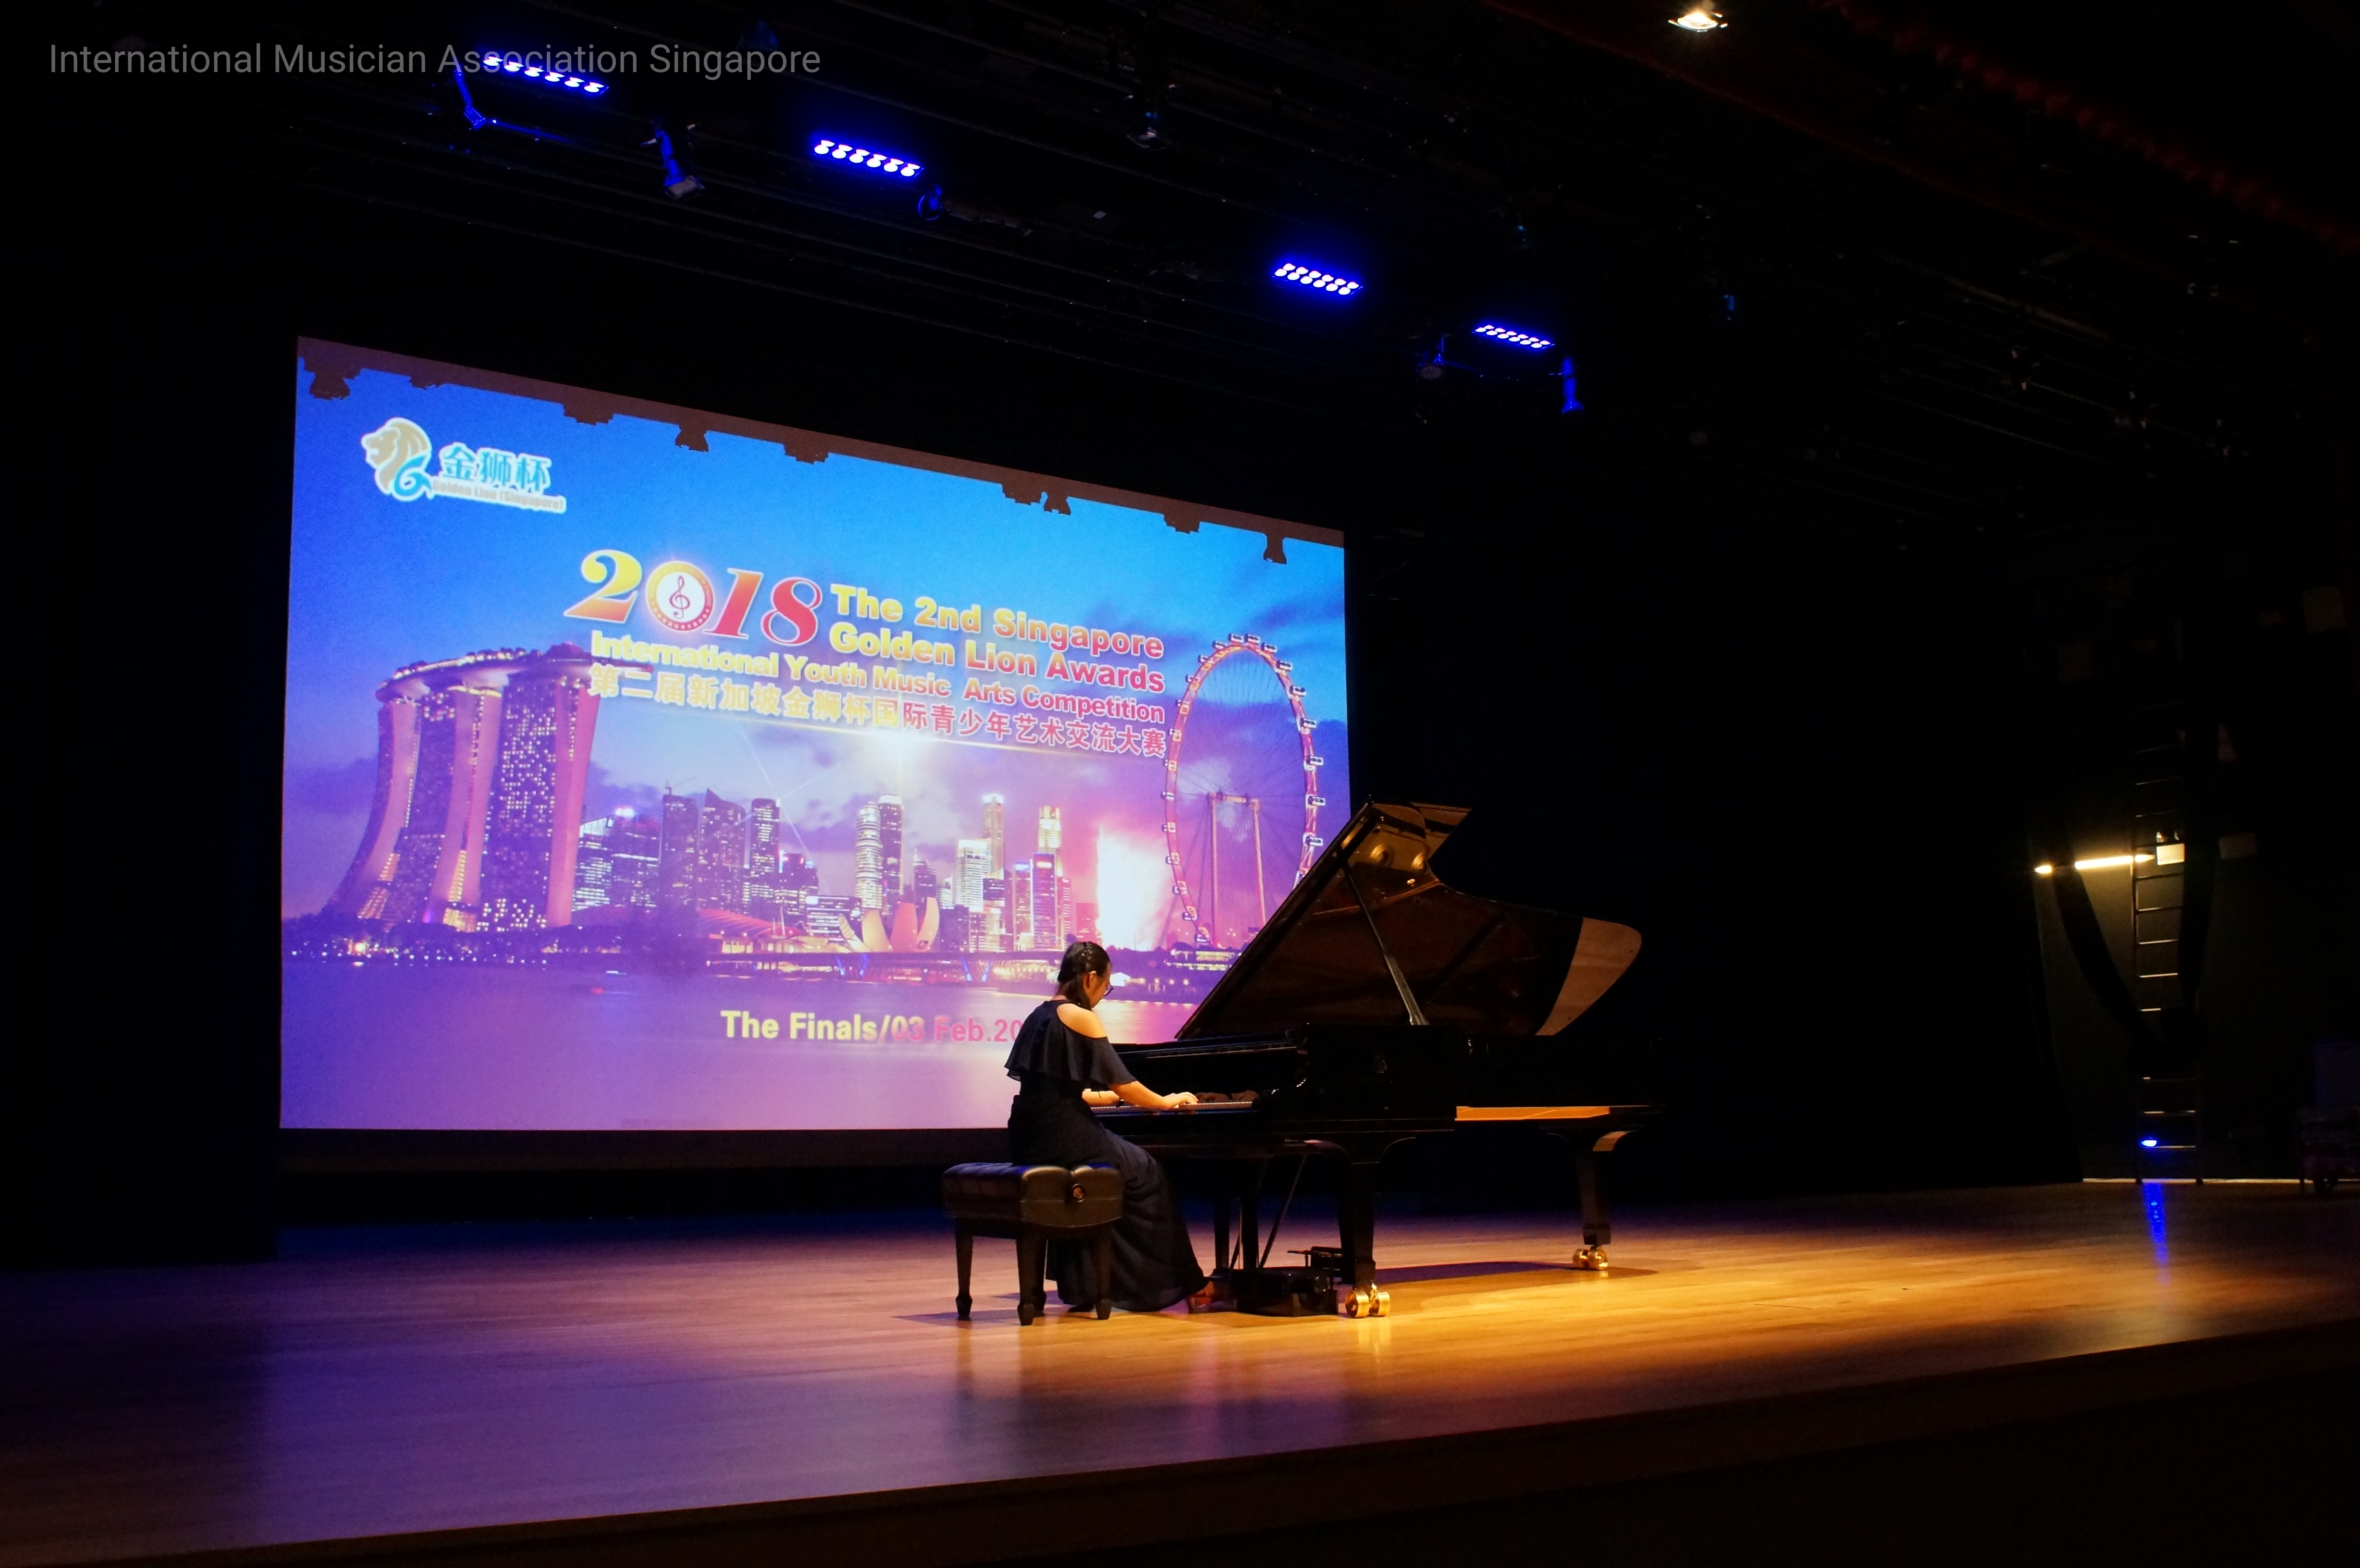 The 2nd SGLAIY Music Arts Competition | IMASG-International Musicans